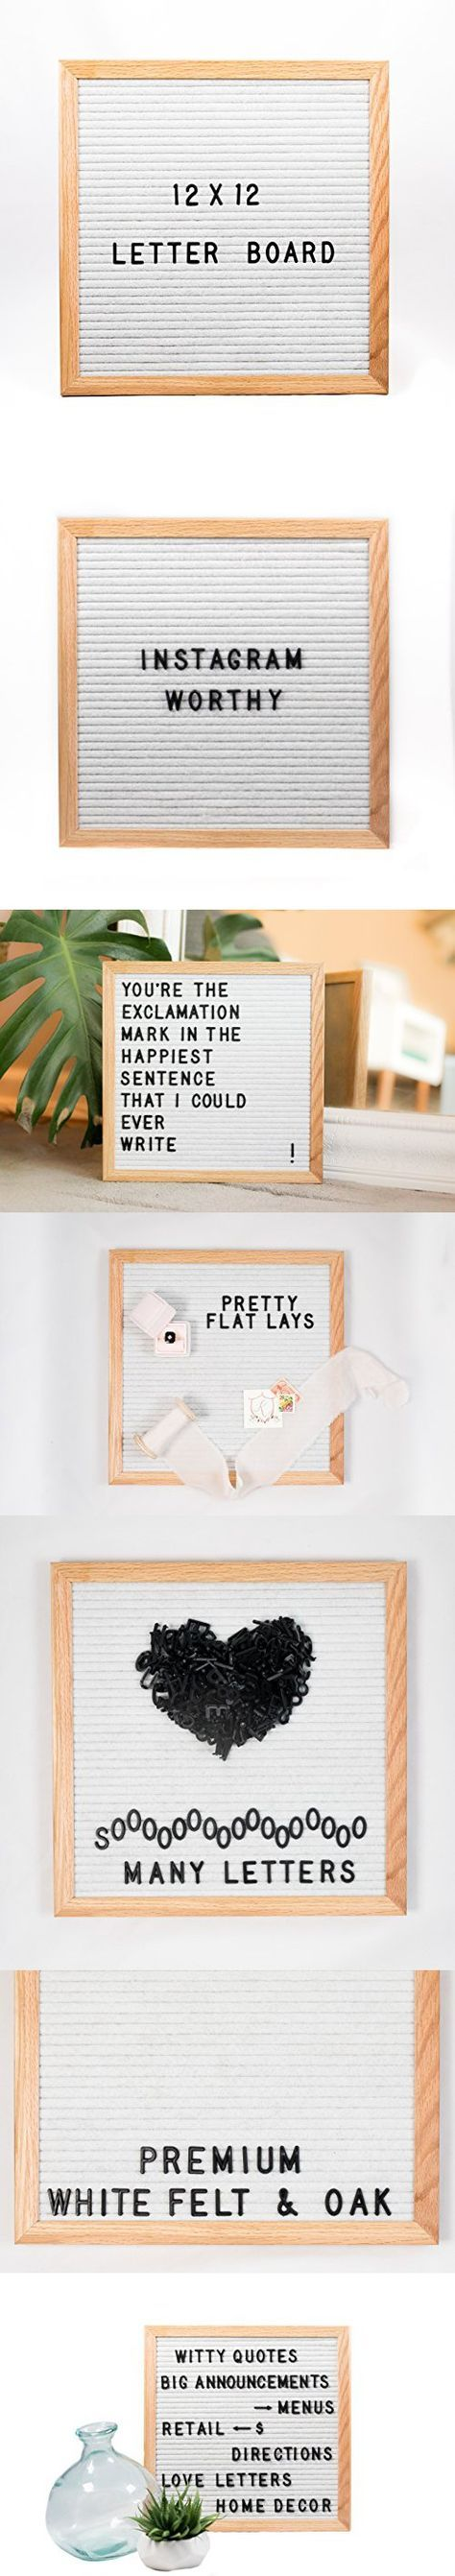 Best Size Letter Board 12 in. X 12 Inches Changeable Letter Sign with Alphabet and Symbols to Make Quotes On White Felt with Wood Oak Frame Perfect for Instagram or Mid Century Modern Home Decor